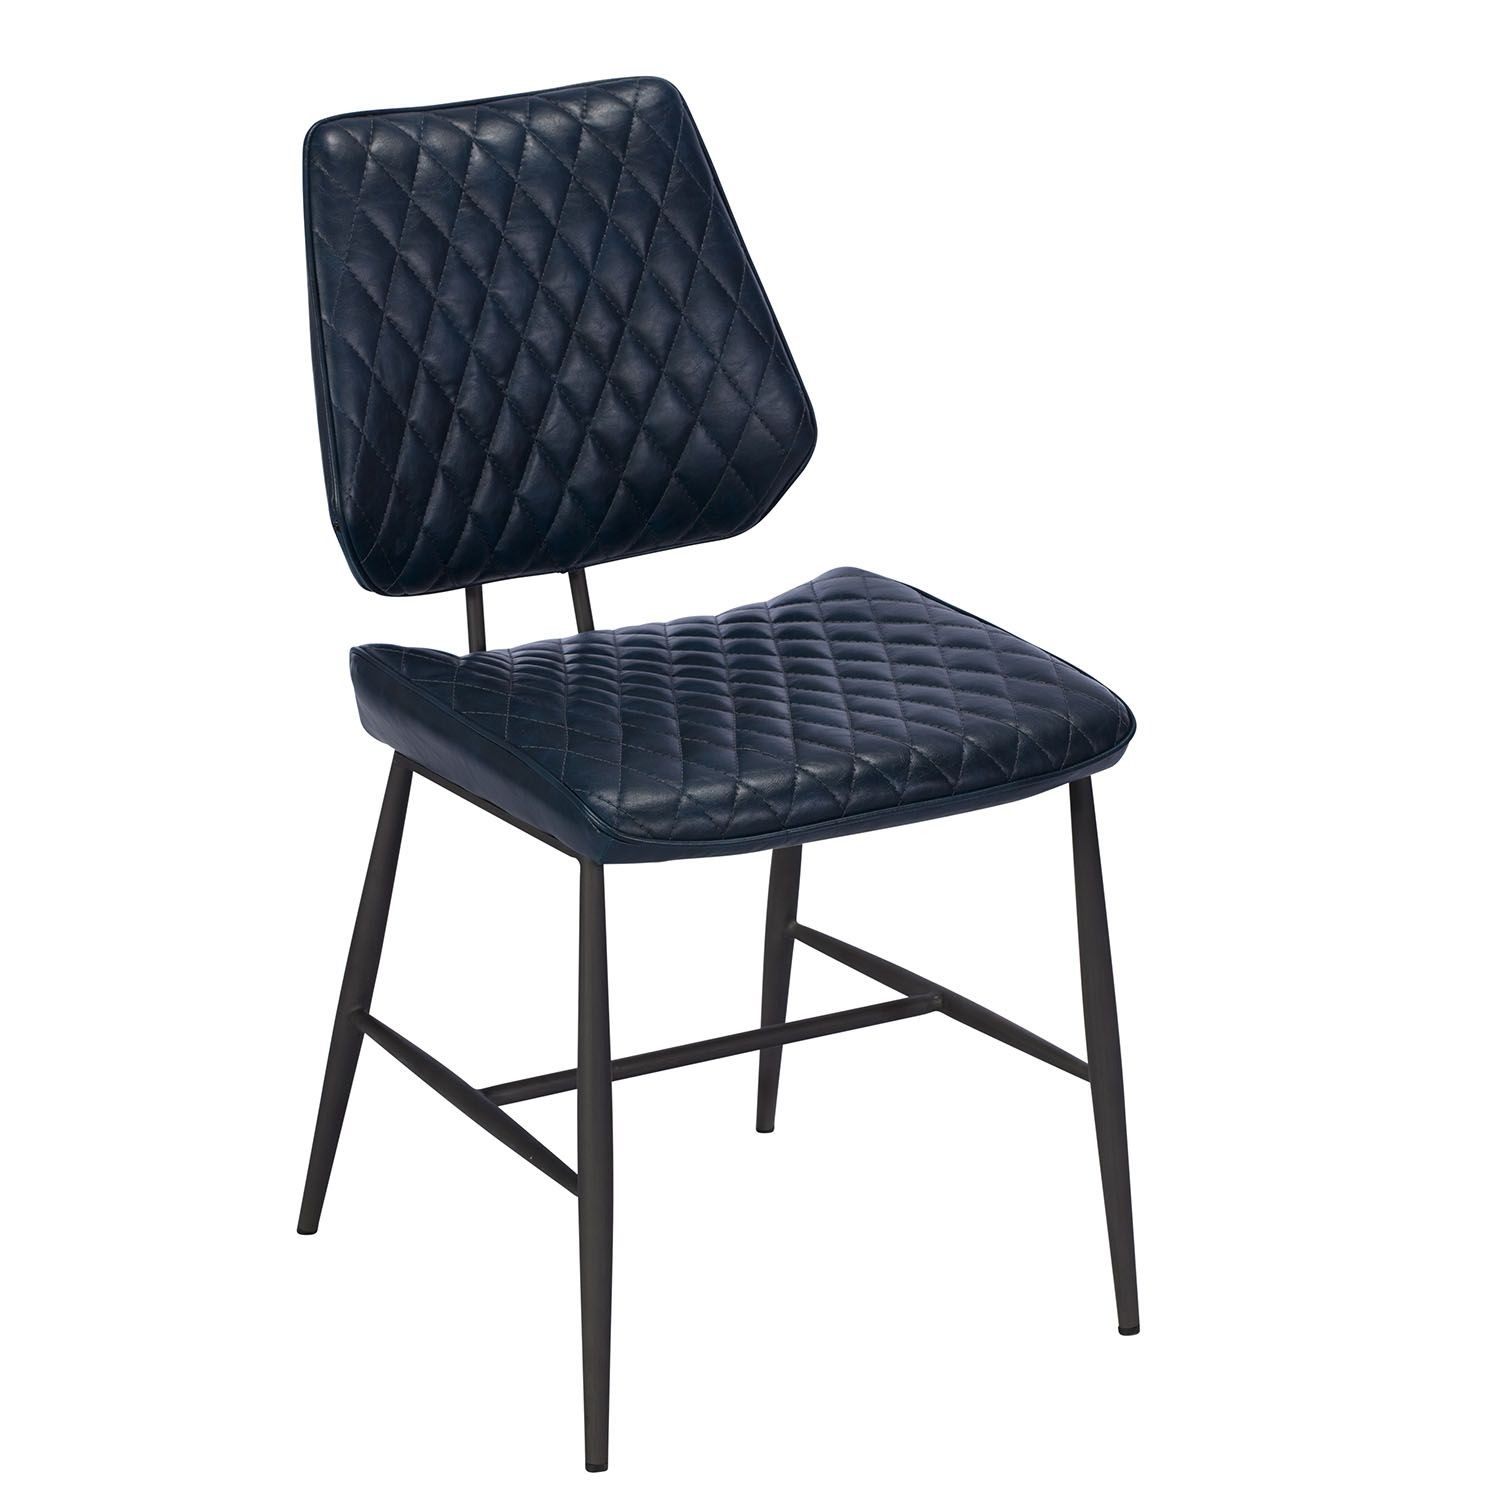 NEMOX BLUE DINING CHAIR – L45.5cm x D59cm x H87cm